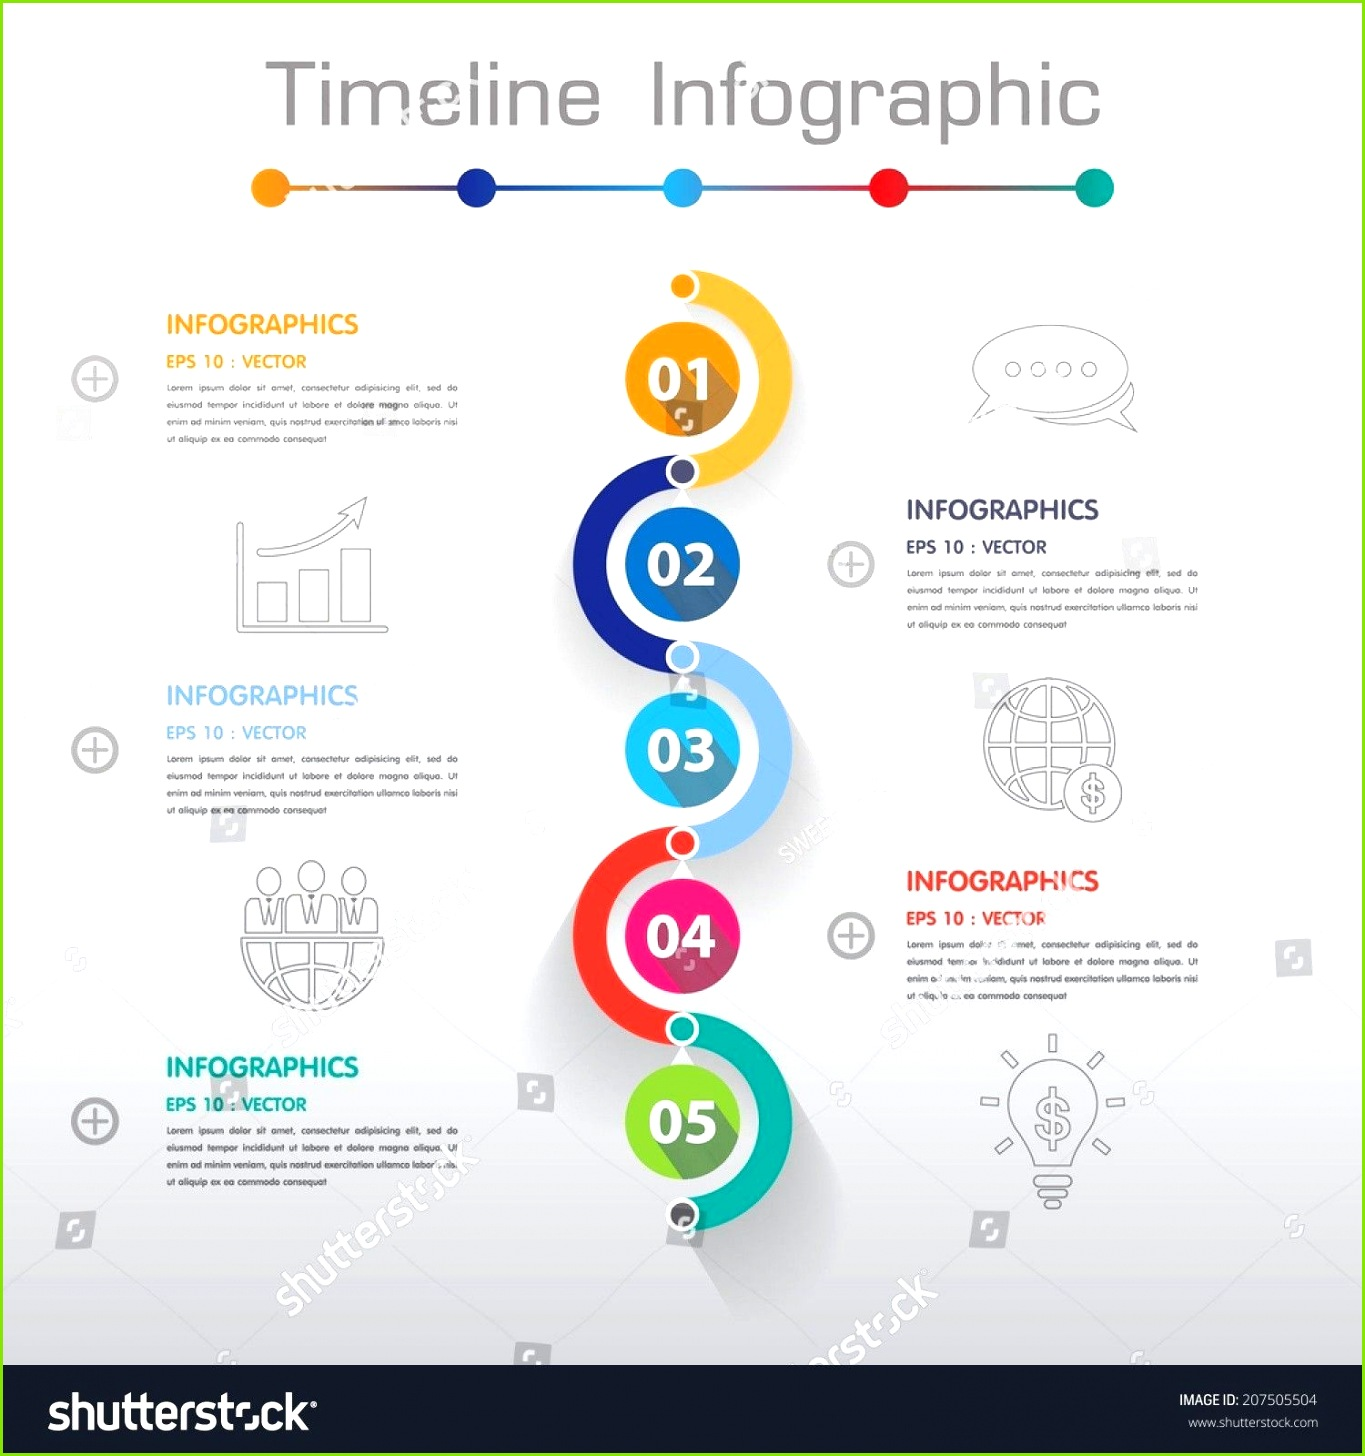 Biology Infographic – ¢Ë†Å¡ Powerpoint Templates for Biology New Prophoto Templates 0d